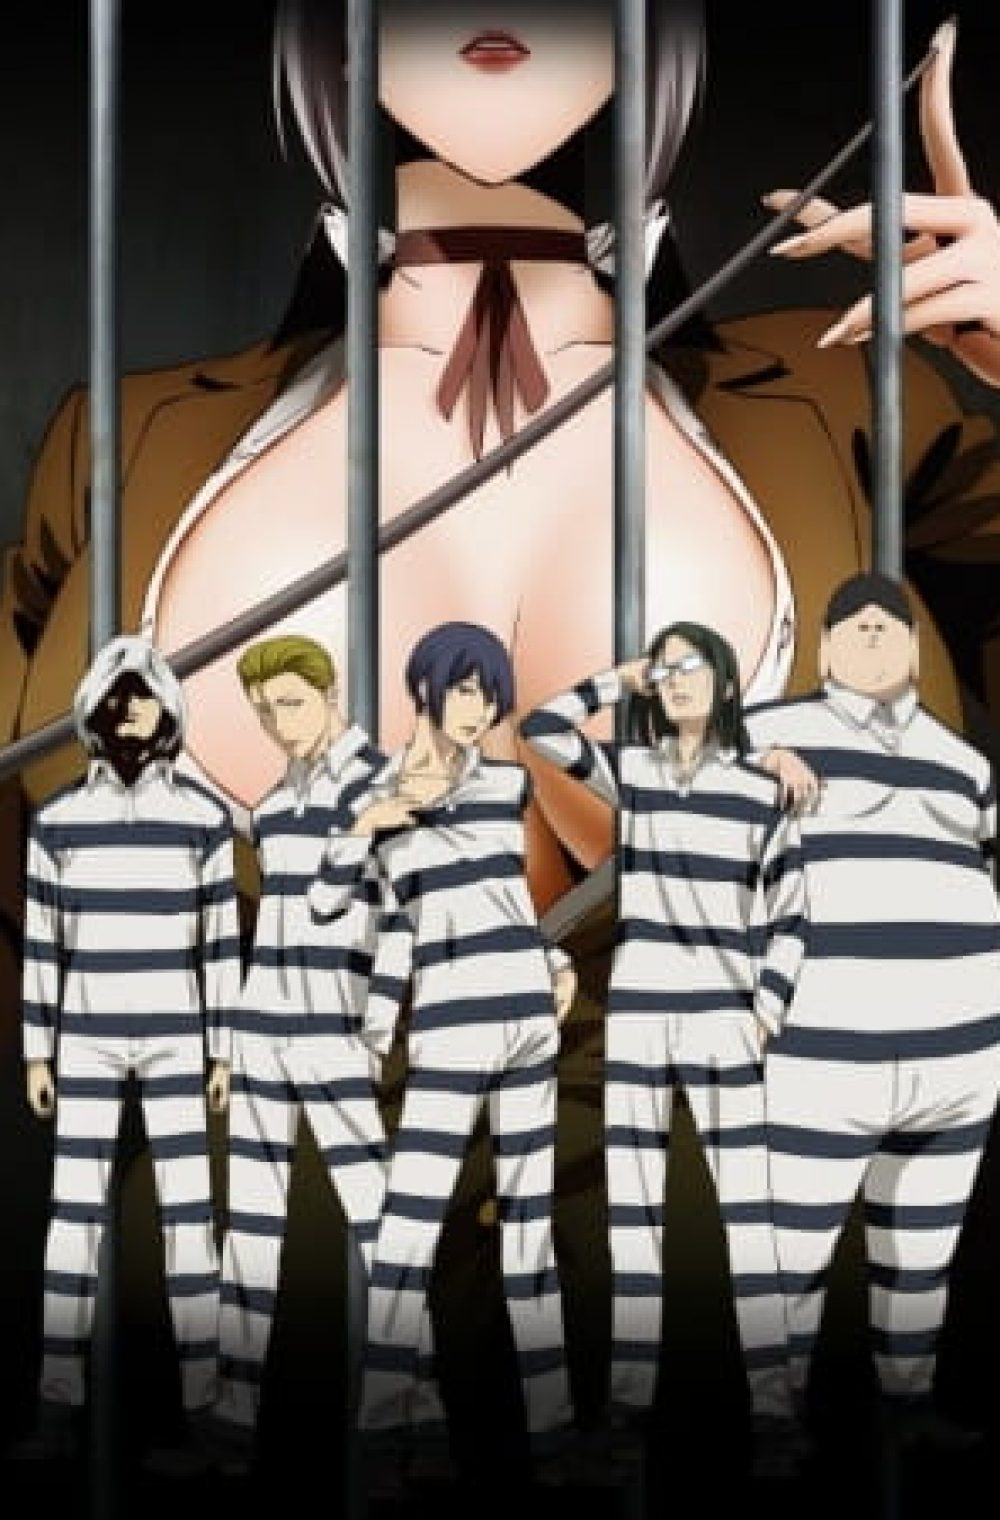 (DUB) Prison School (UNCENSORED)